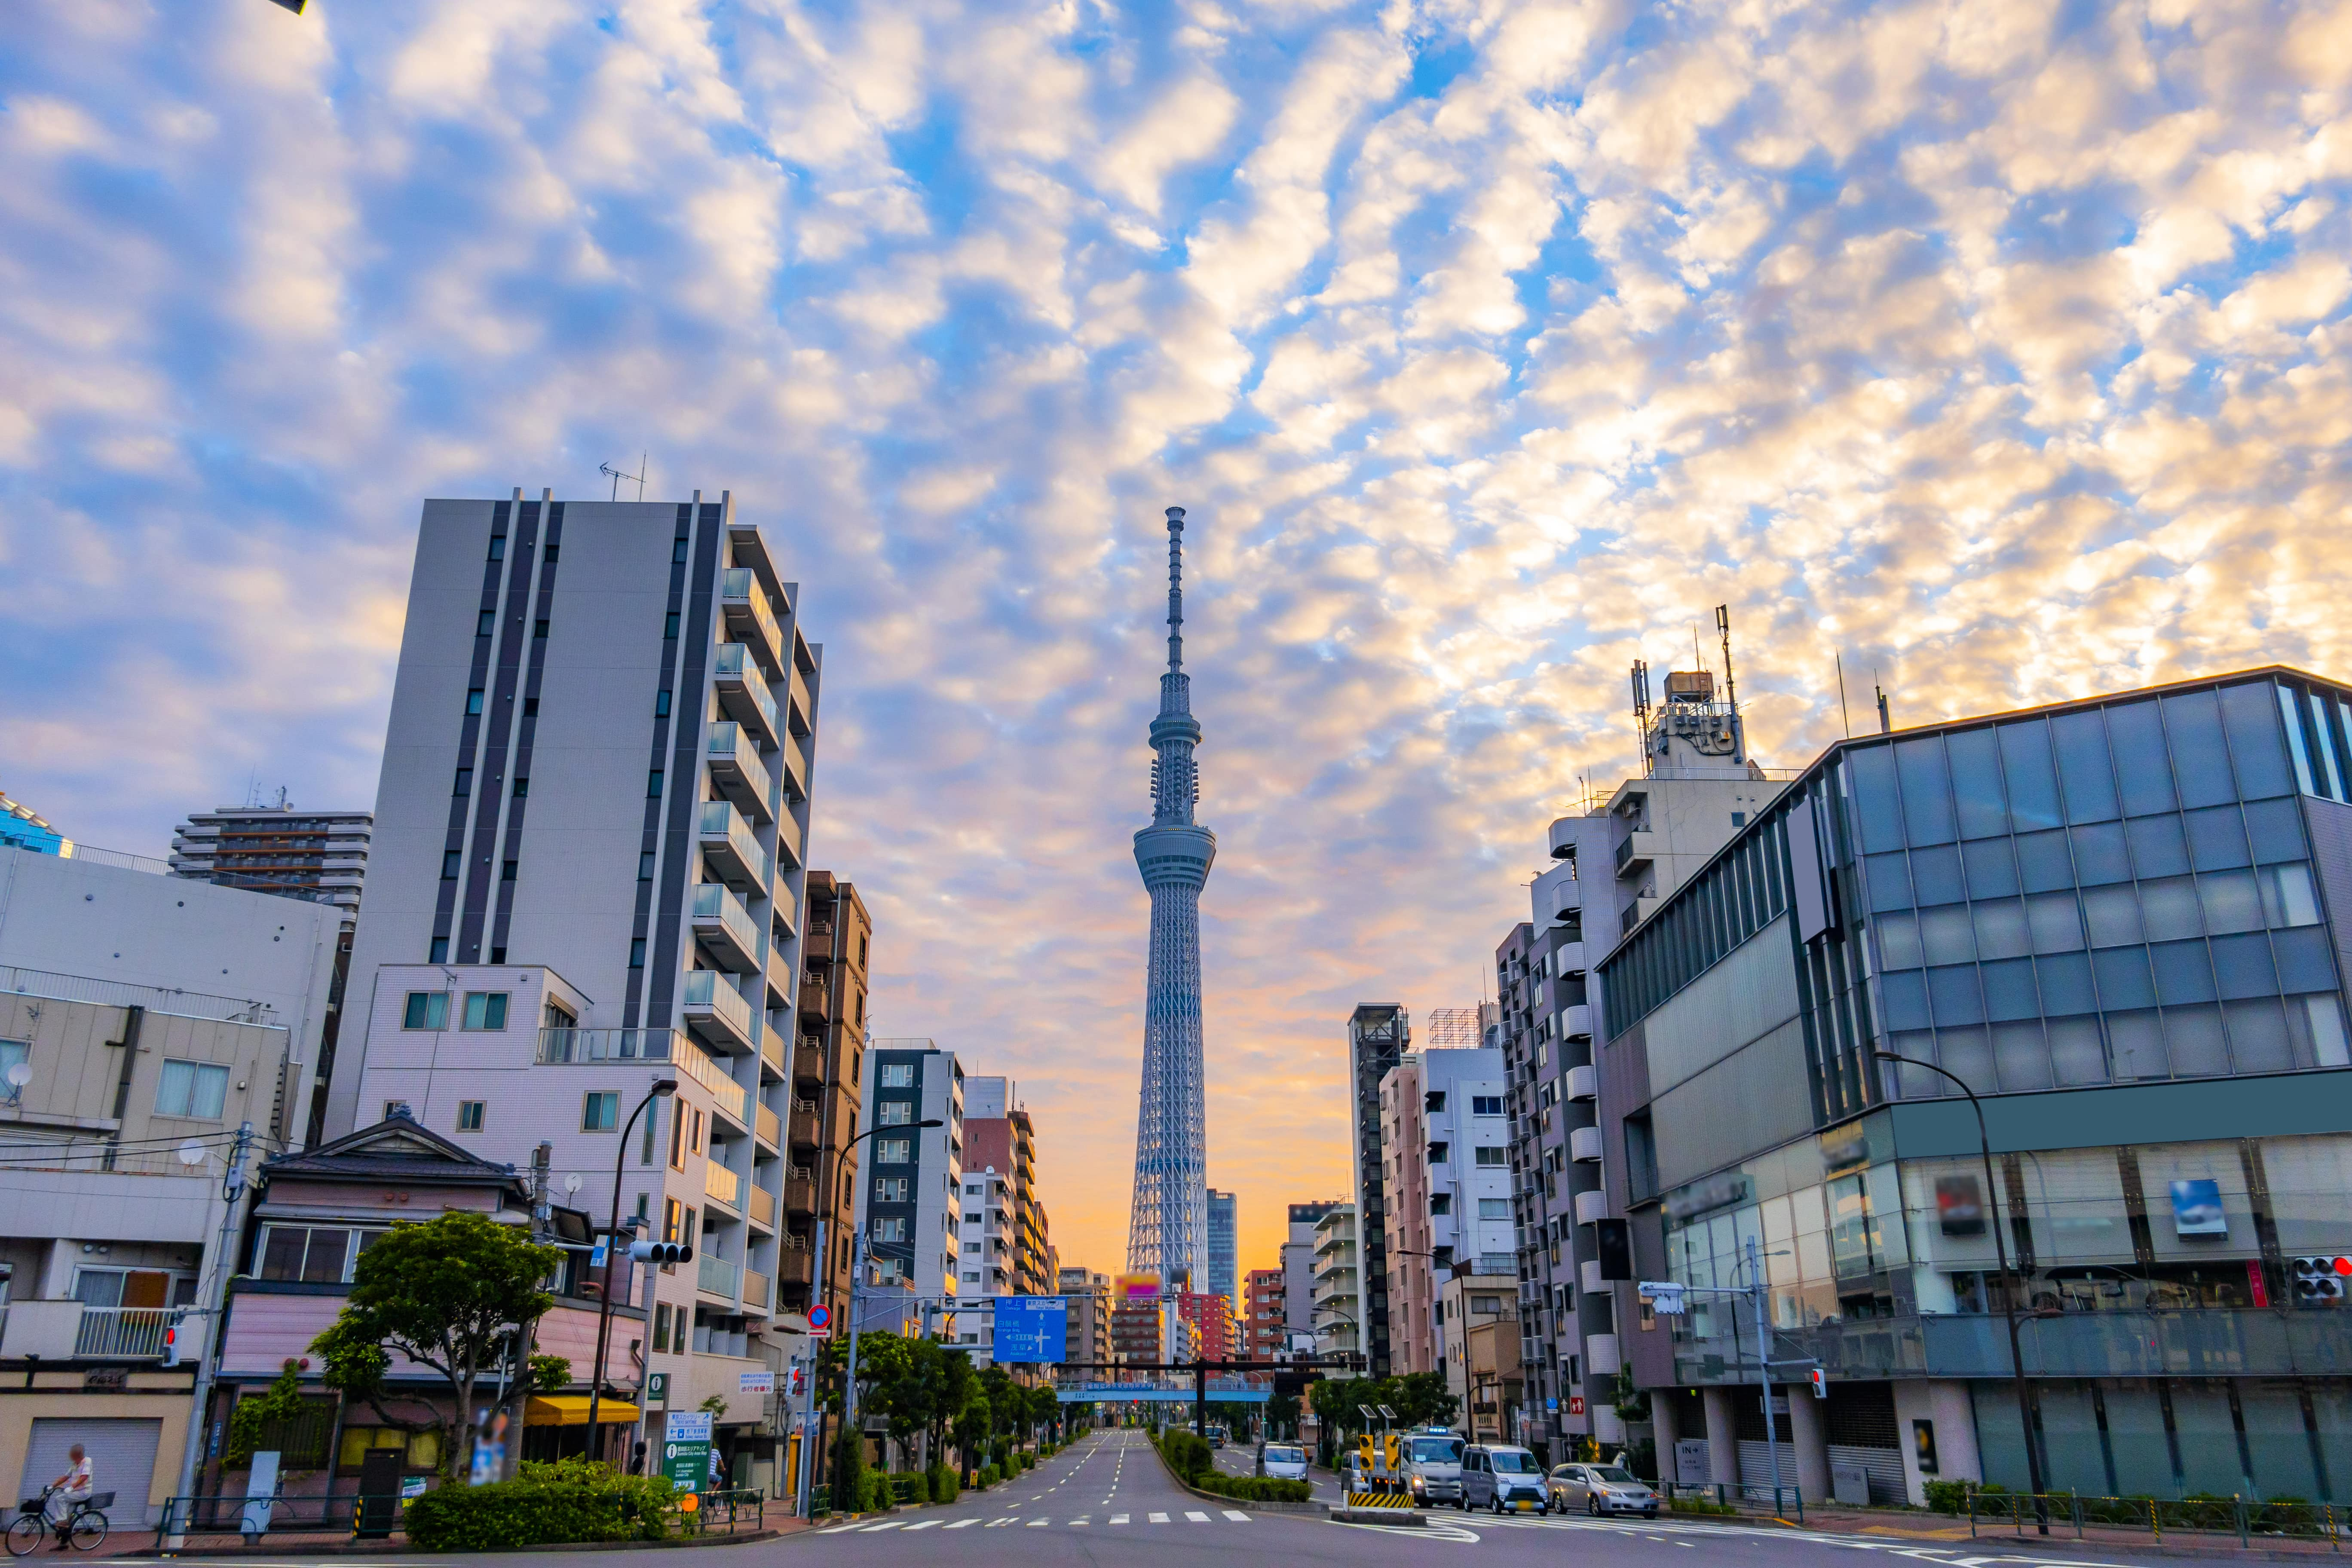 Tokyo Skytree: The New Symbol of Modern Tokyo